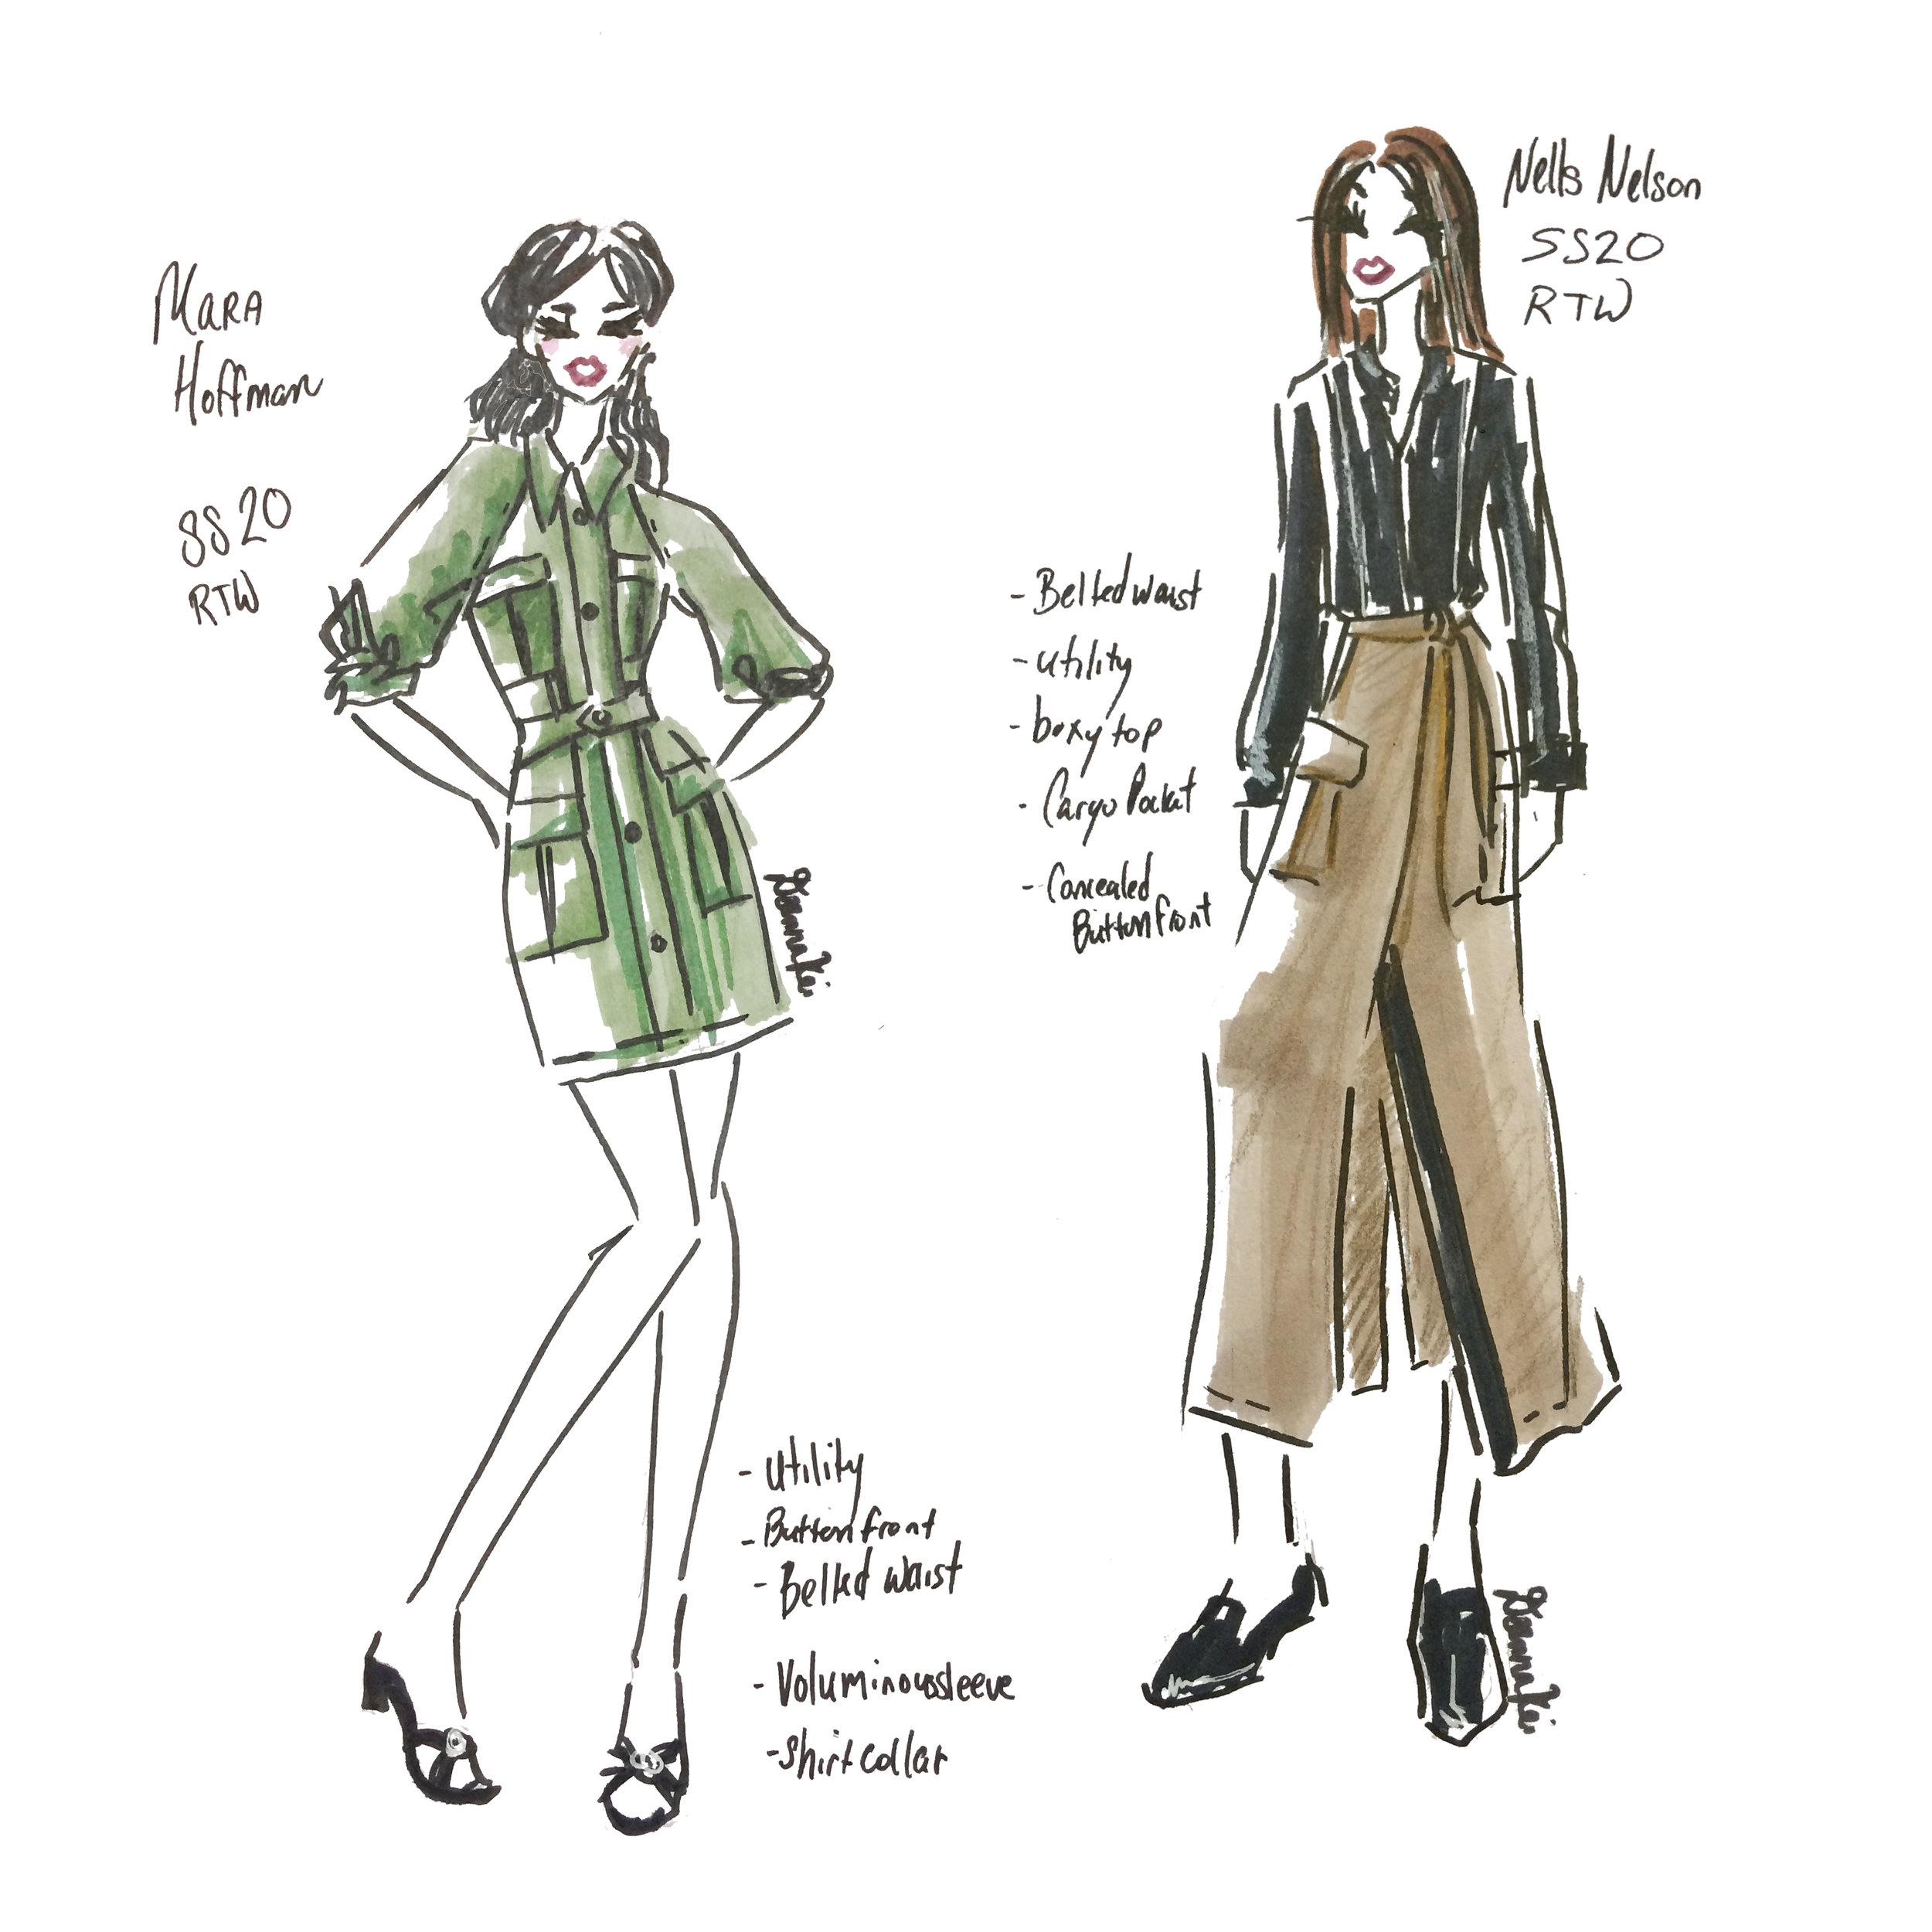 Mara Hoffman and Nells Nelson - Spring 2020 NYFW - Sketch by DeannaKei